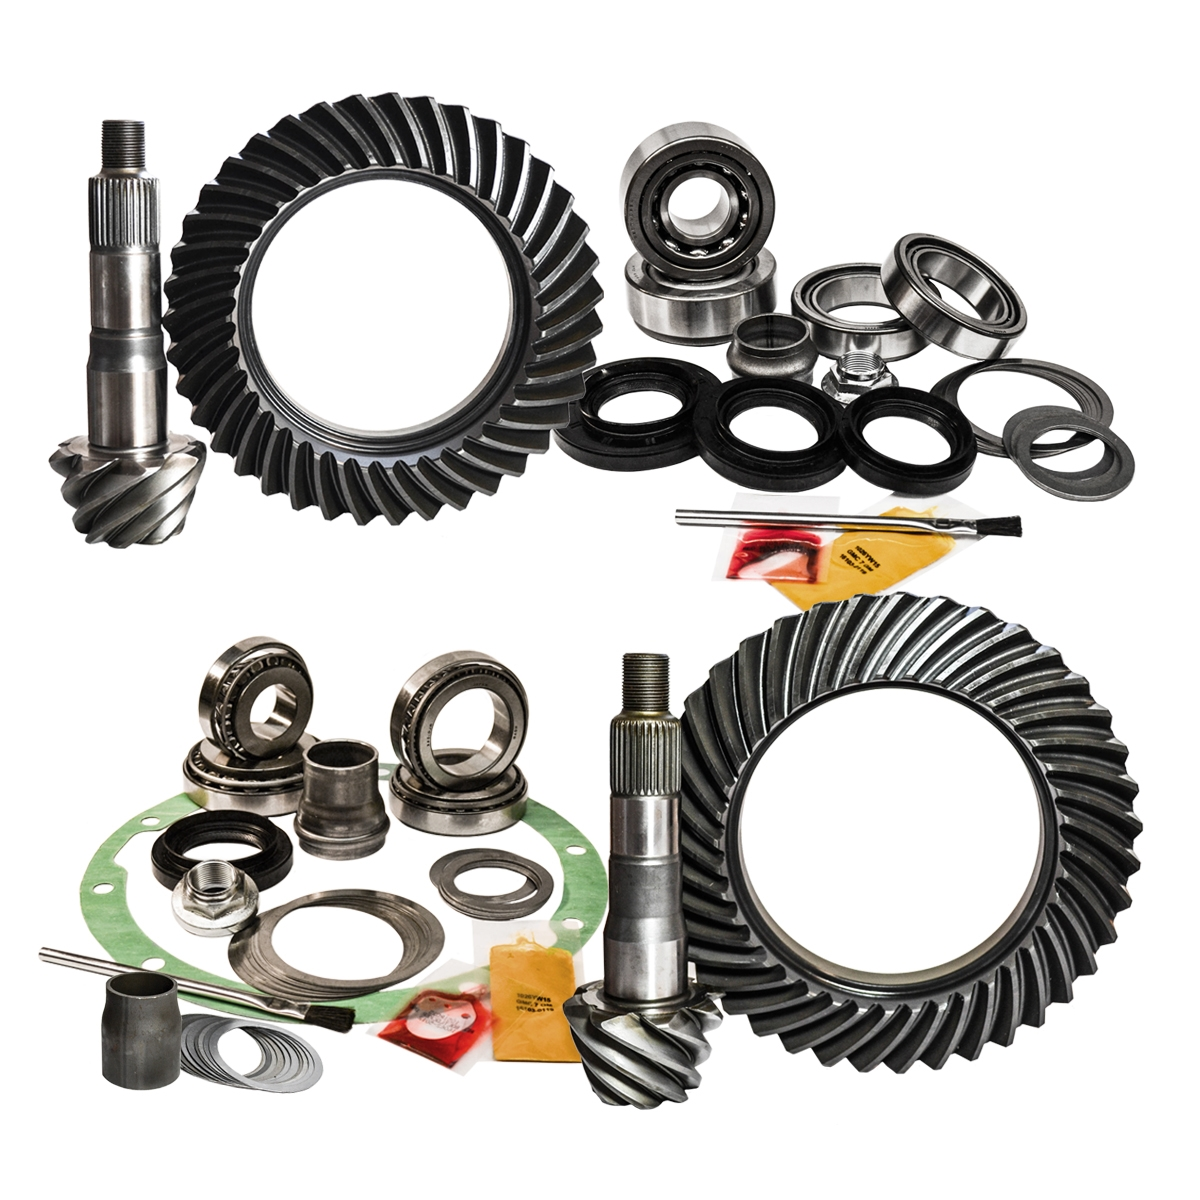 08 and Newer Toyota 200 Series/07+ Tundra 4.6L/4.7L 4.88 Ratio Gear Package Kit Nitro Gear and Axle